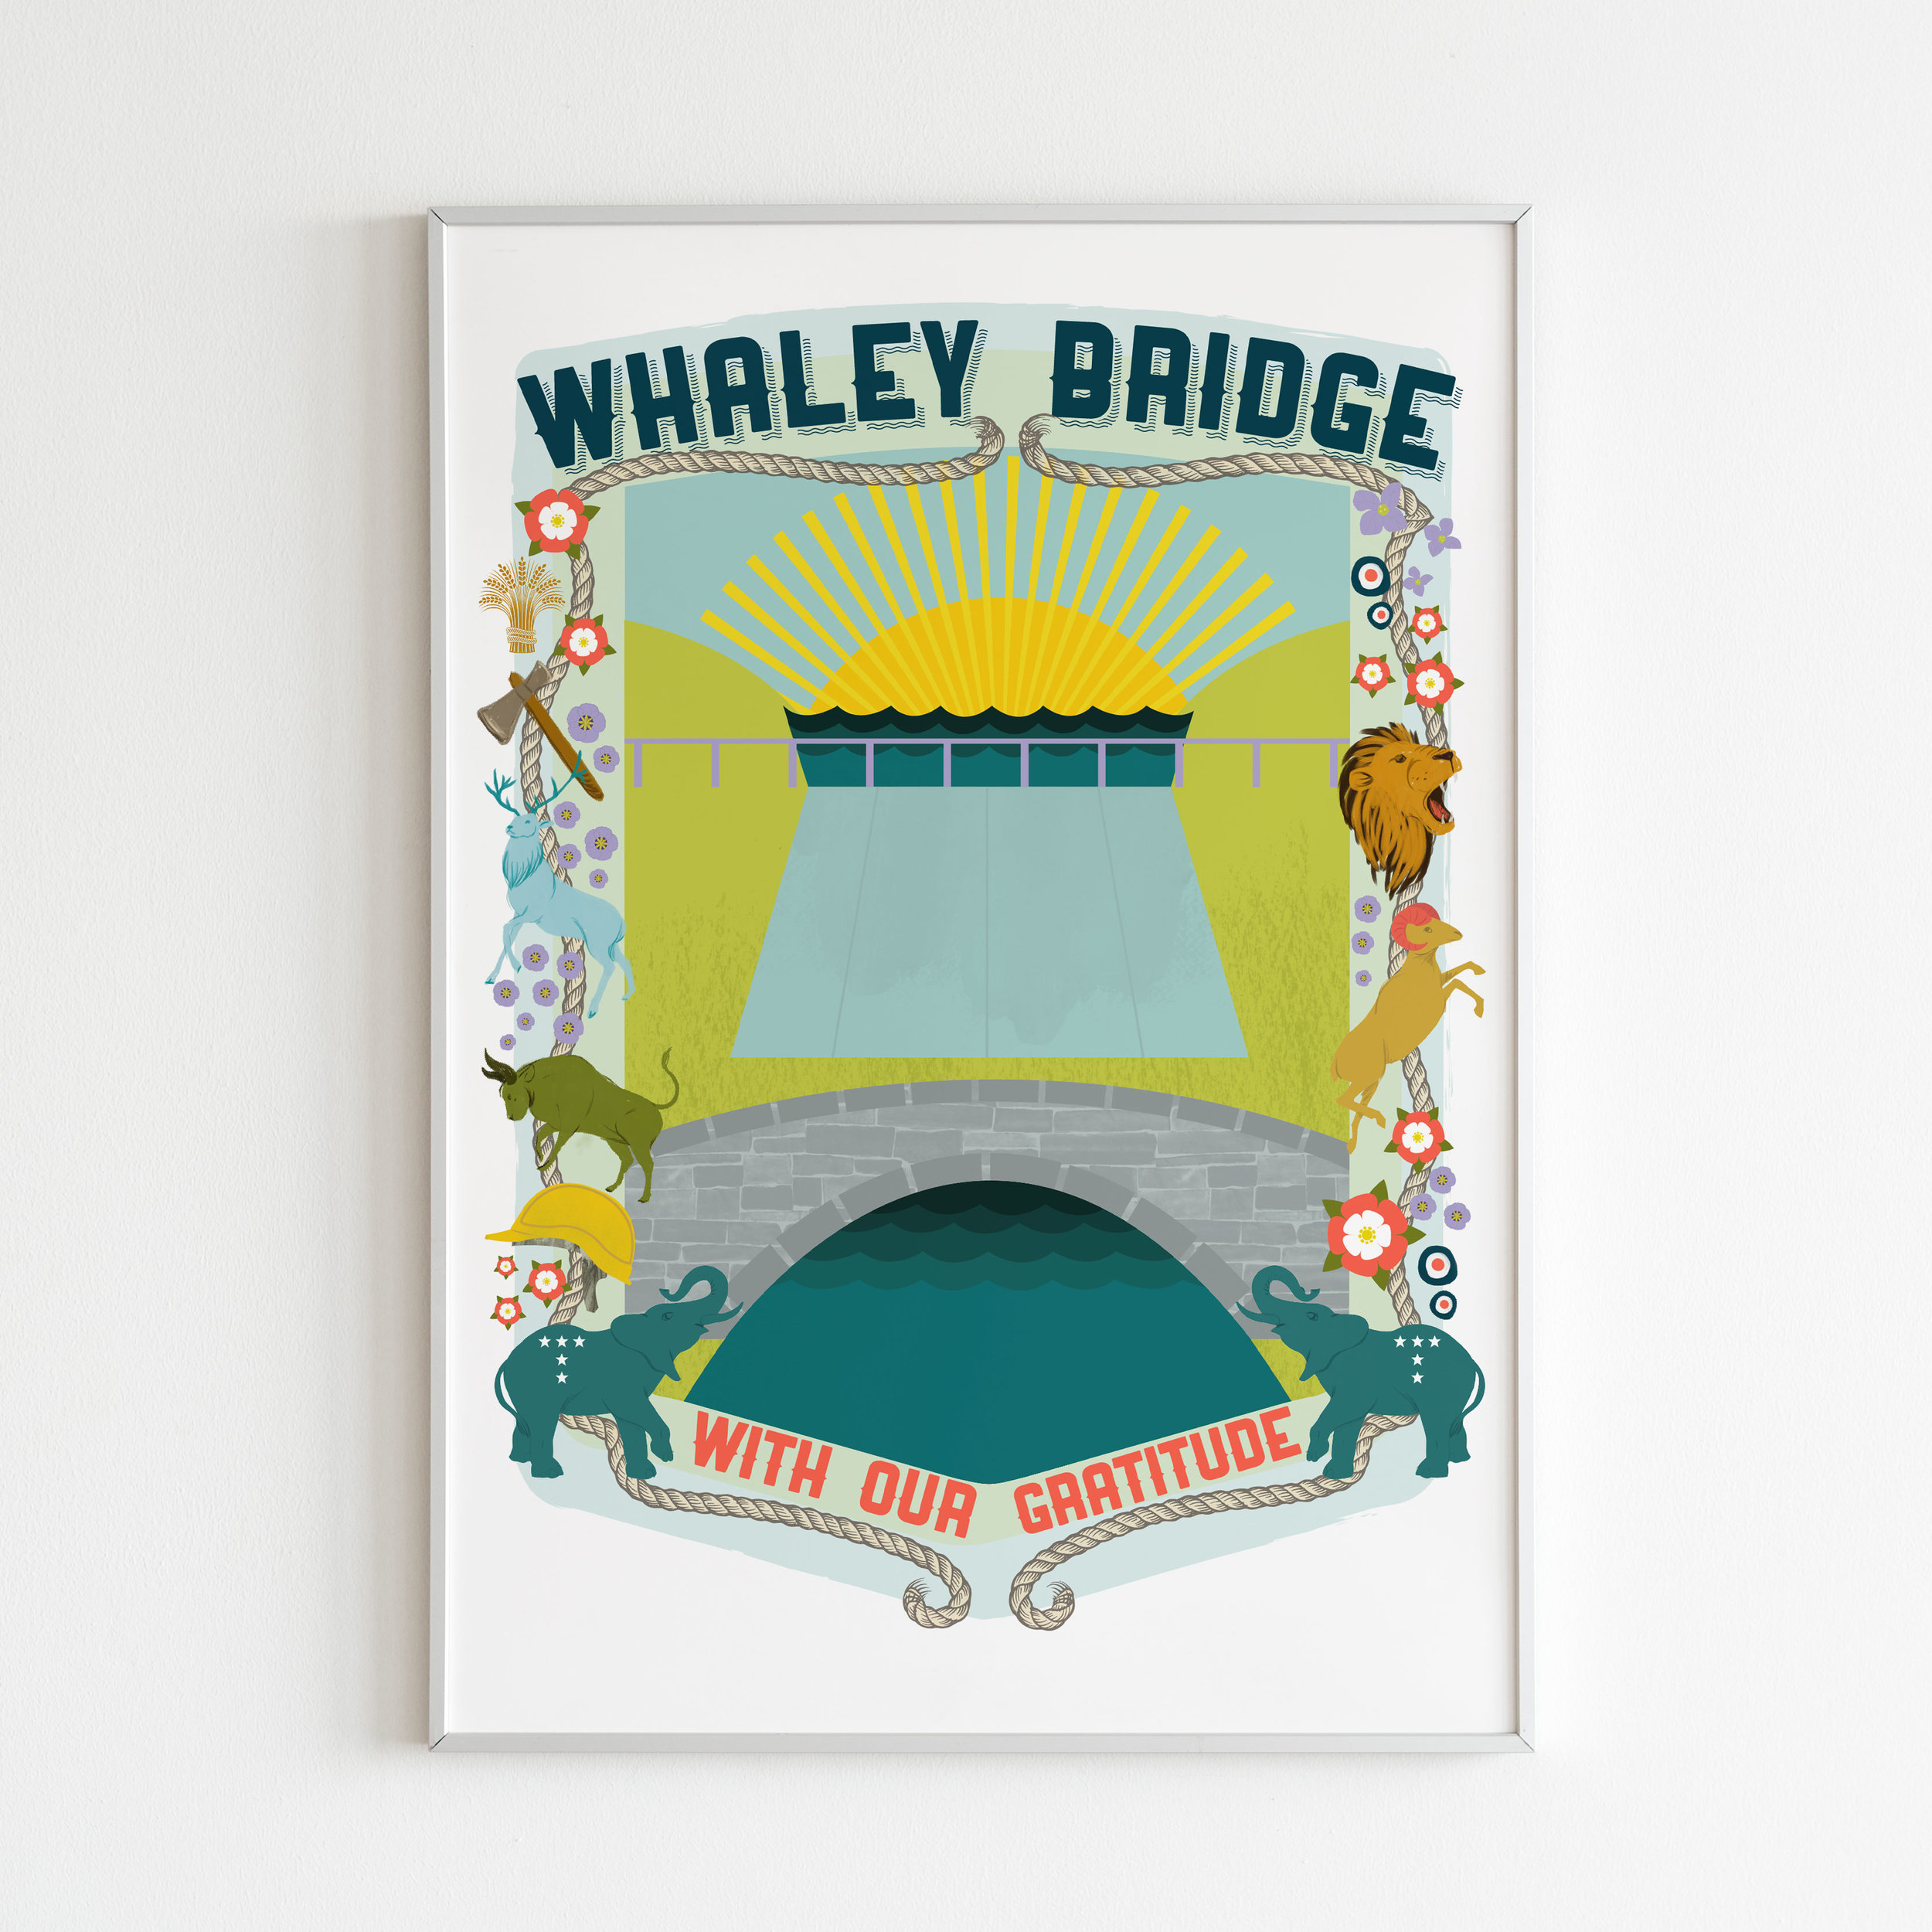 Whaley Bridge - With our gratitude - Print